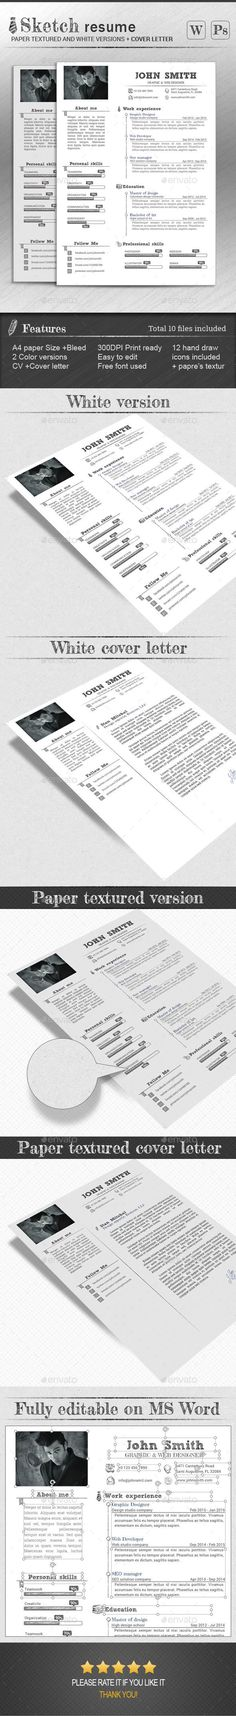 resume resume template downloadresume - Downloadable Resume Formats